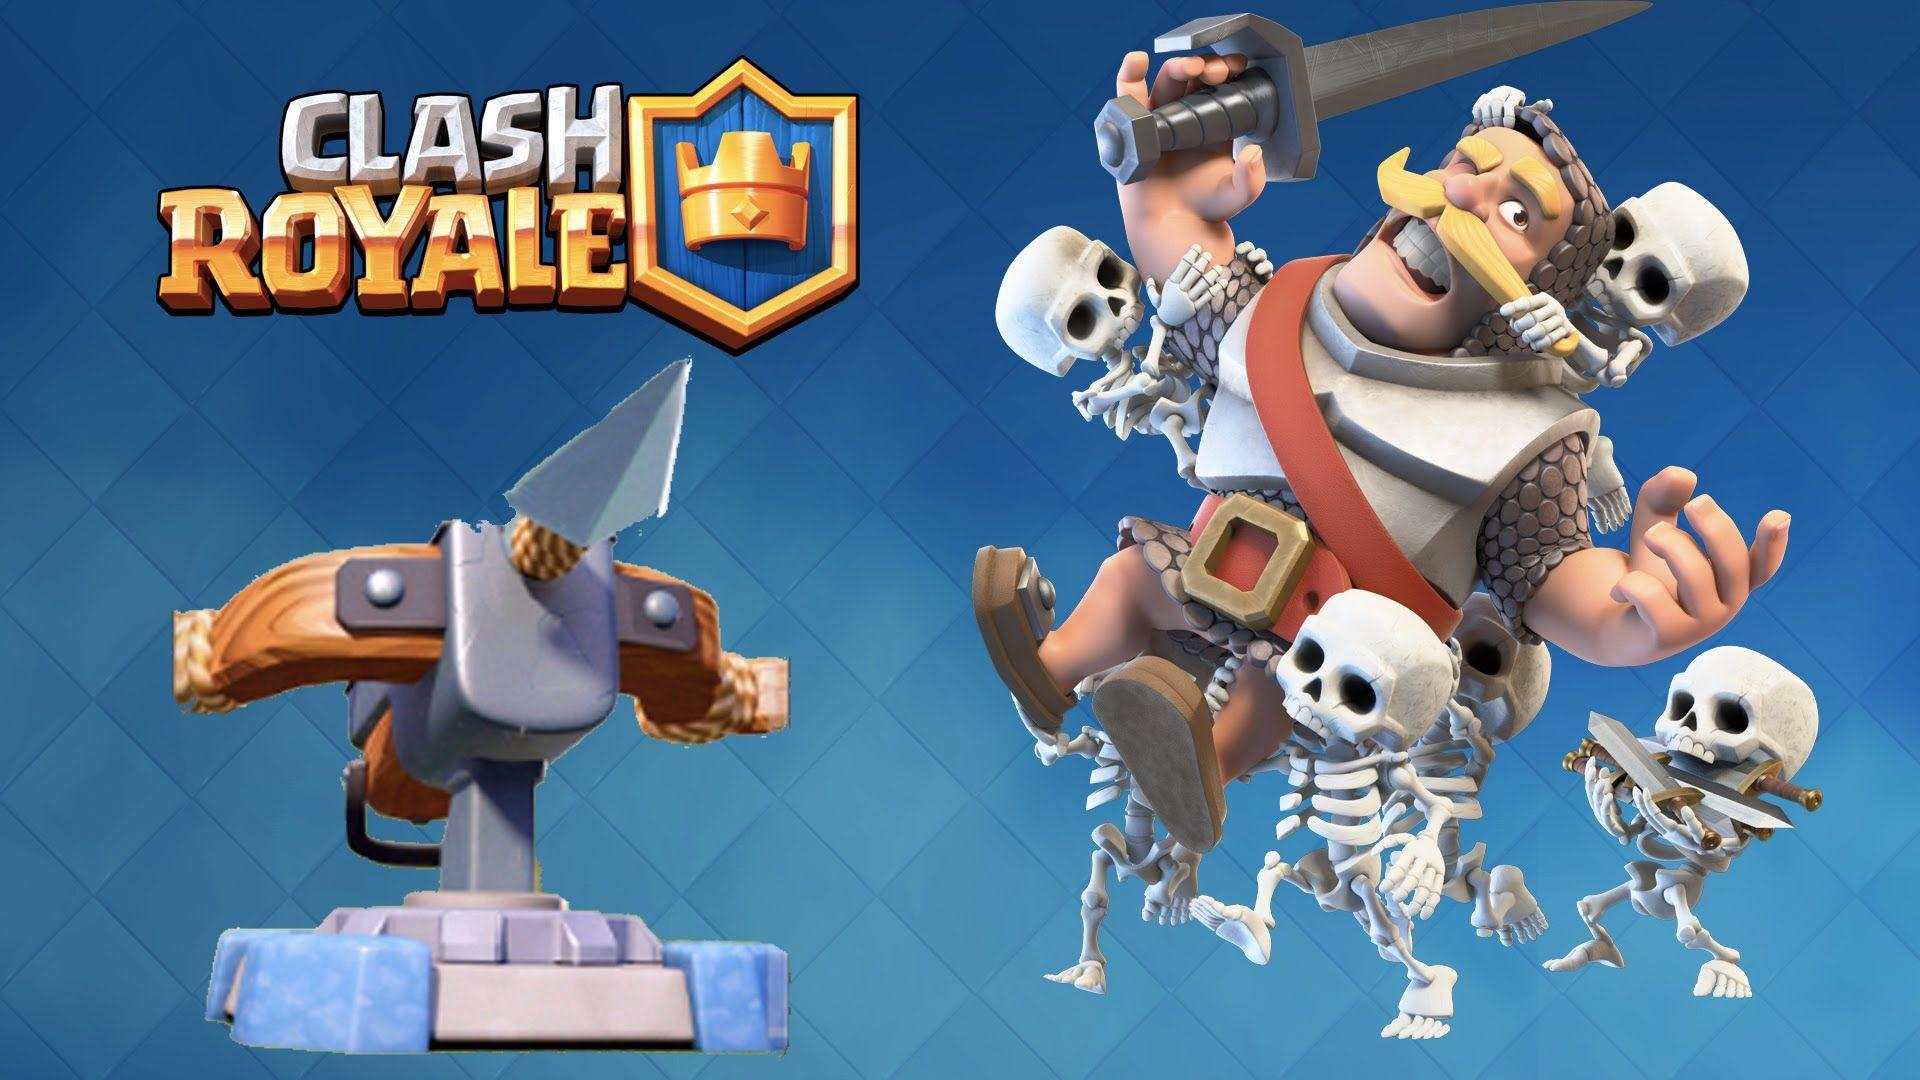 Clash Royale Wallpapers HD #28252 Wallpaper | Download HD Wallpaper